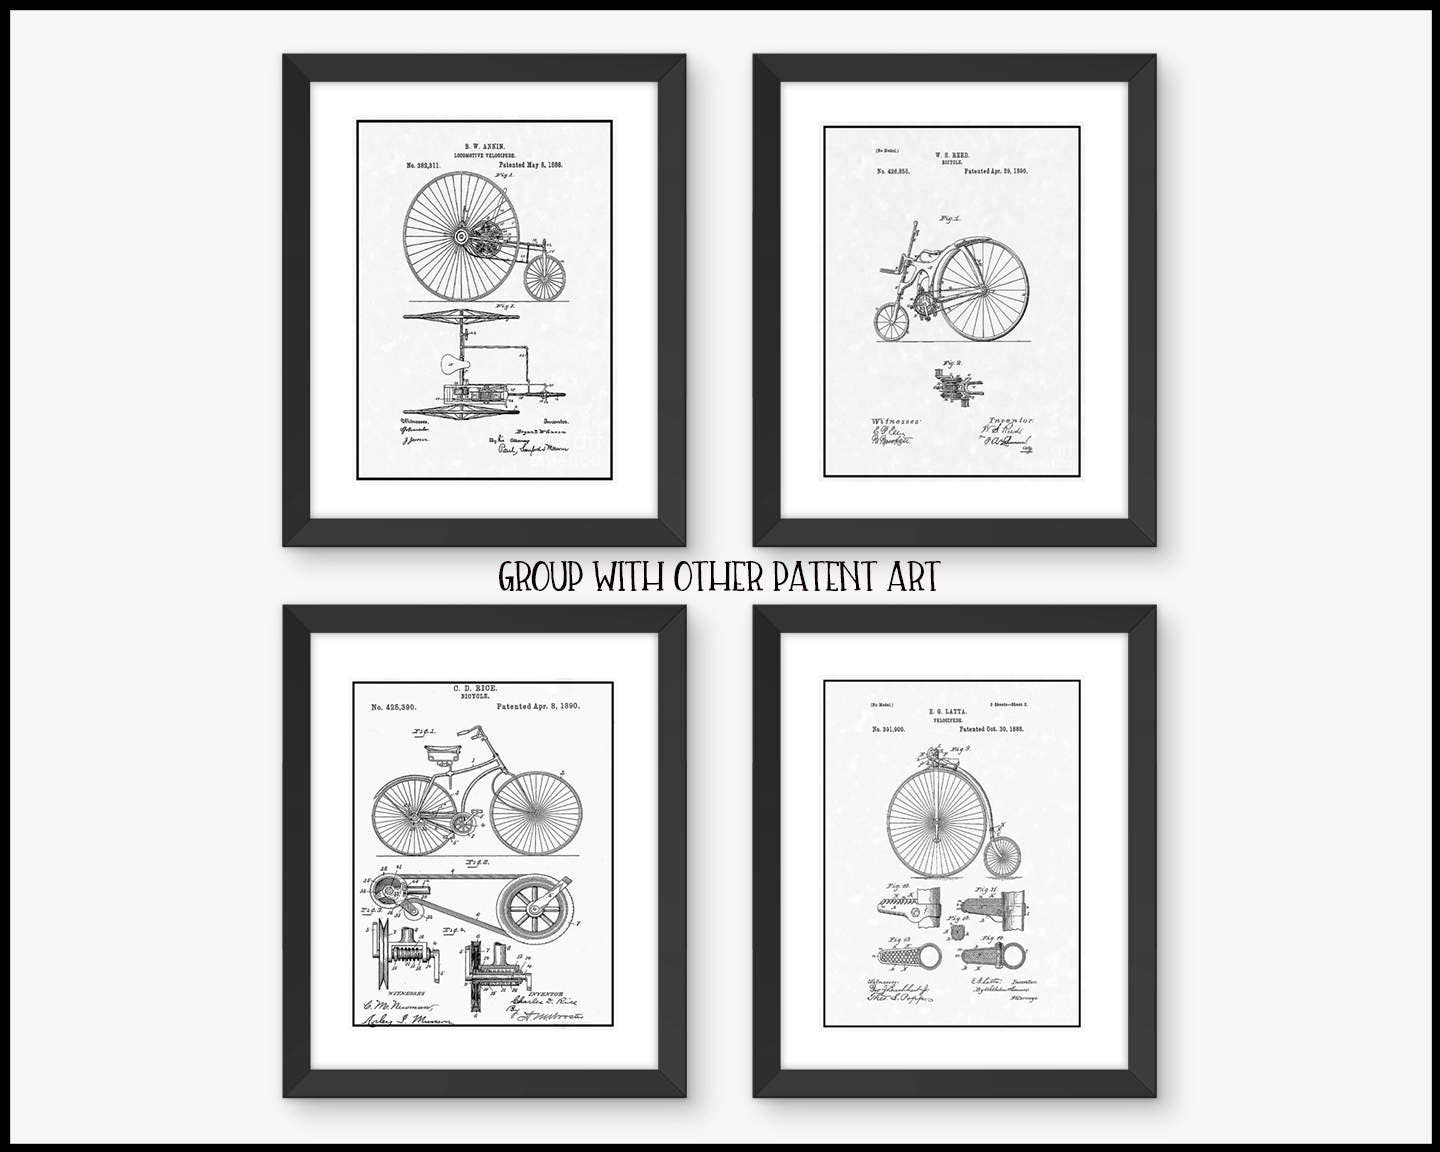 Framed Wall Art Vintage Bicycle Patent Free Shipping